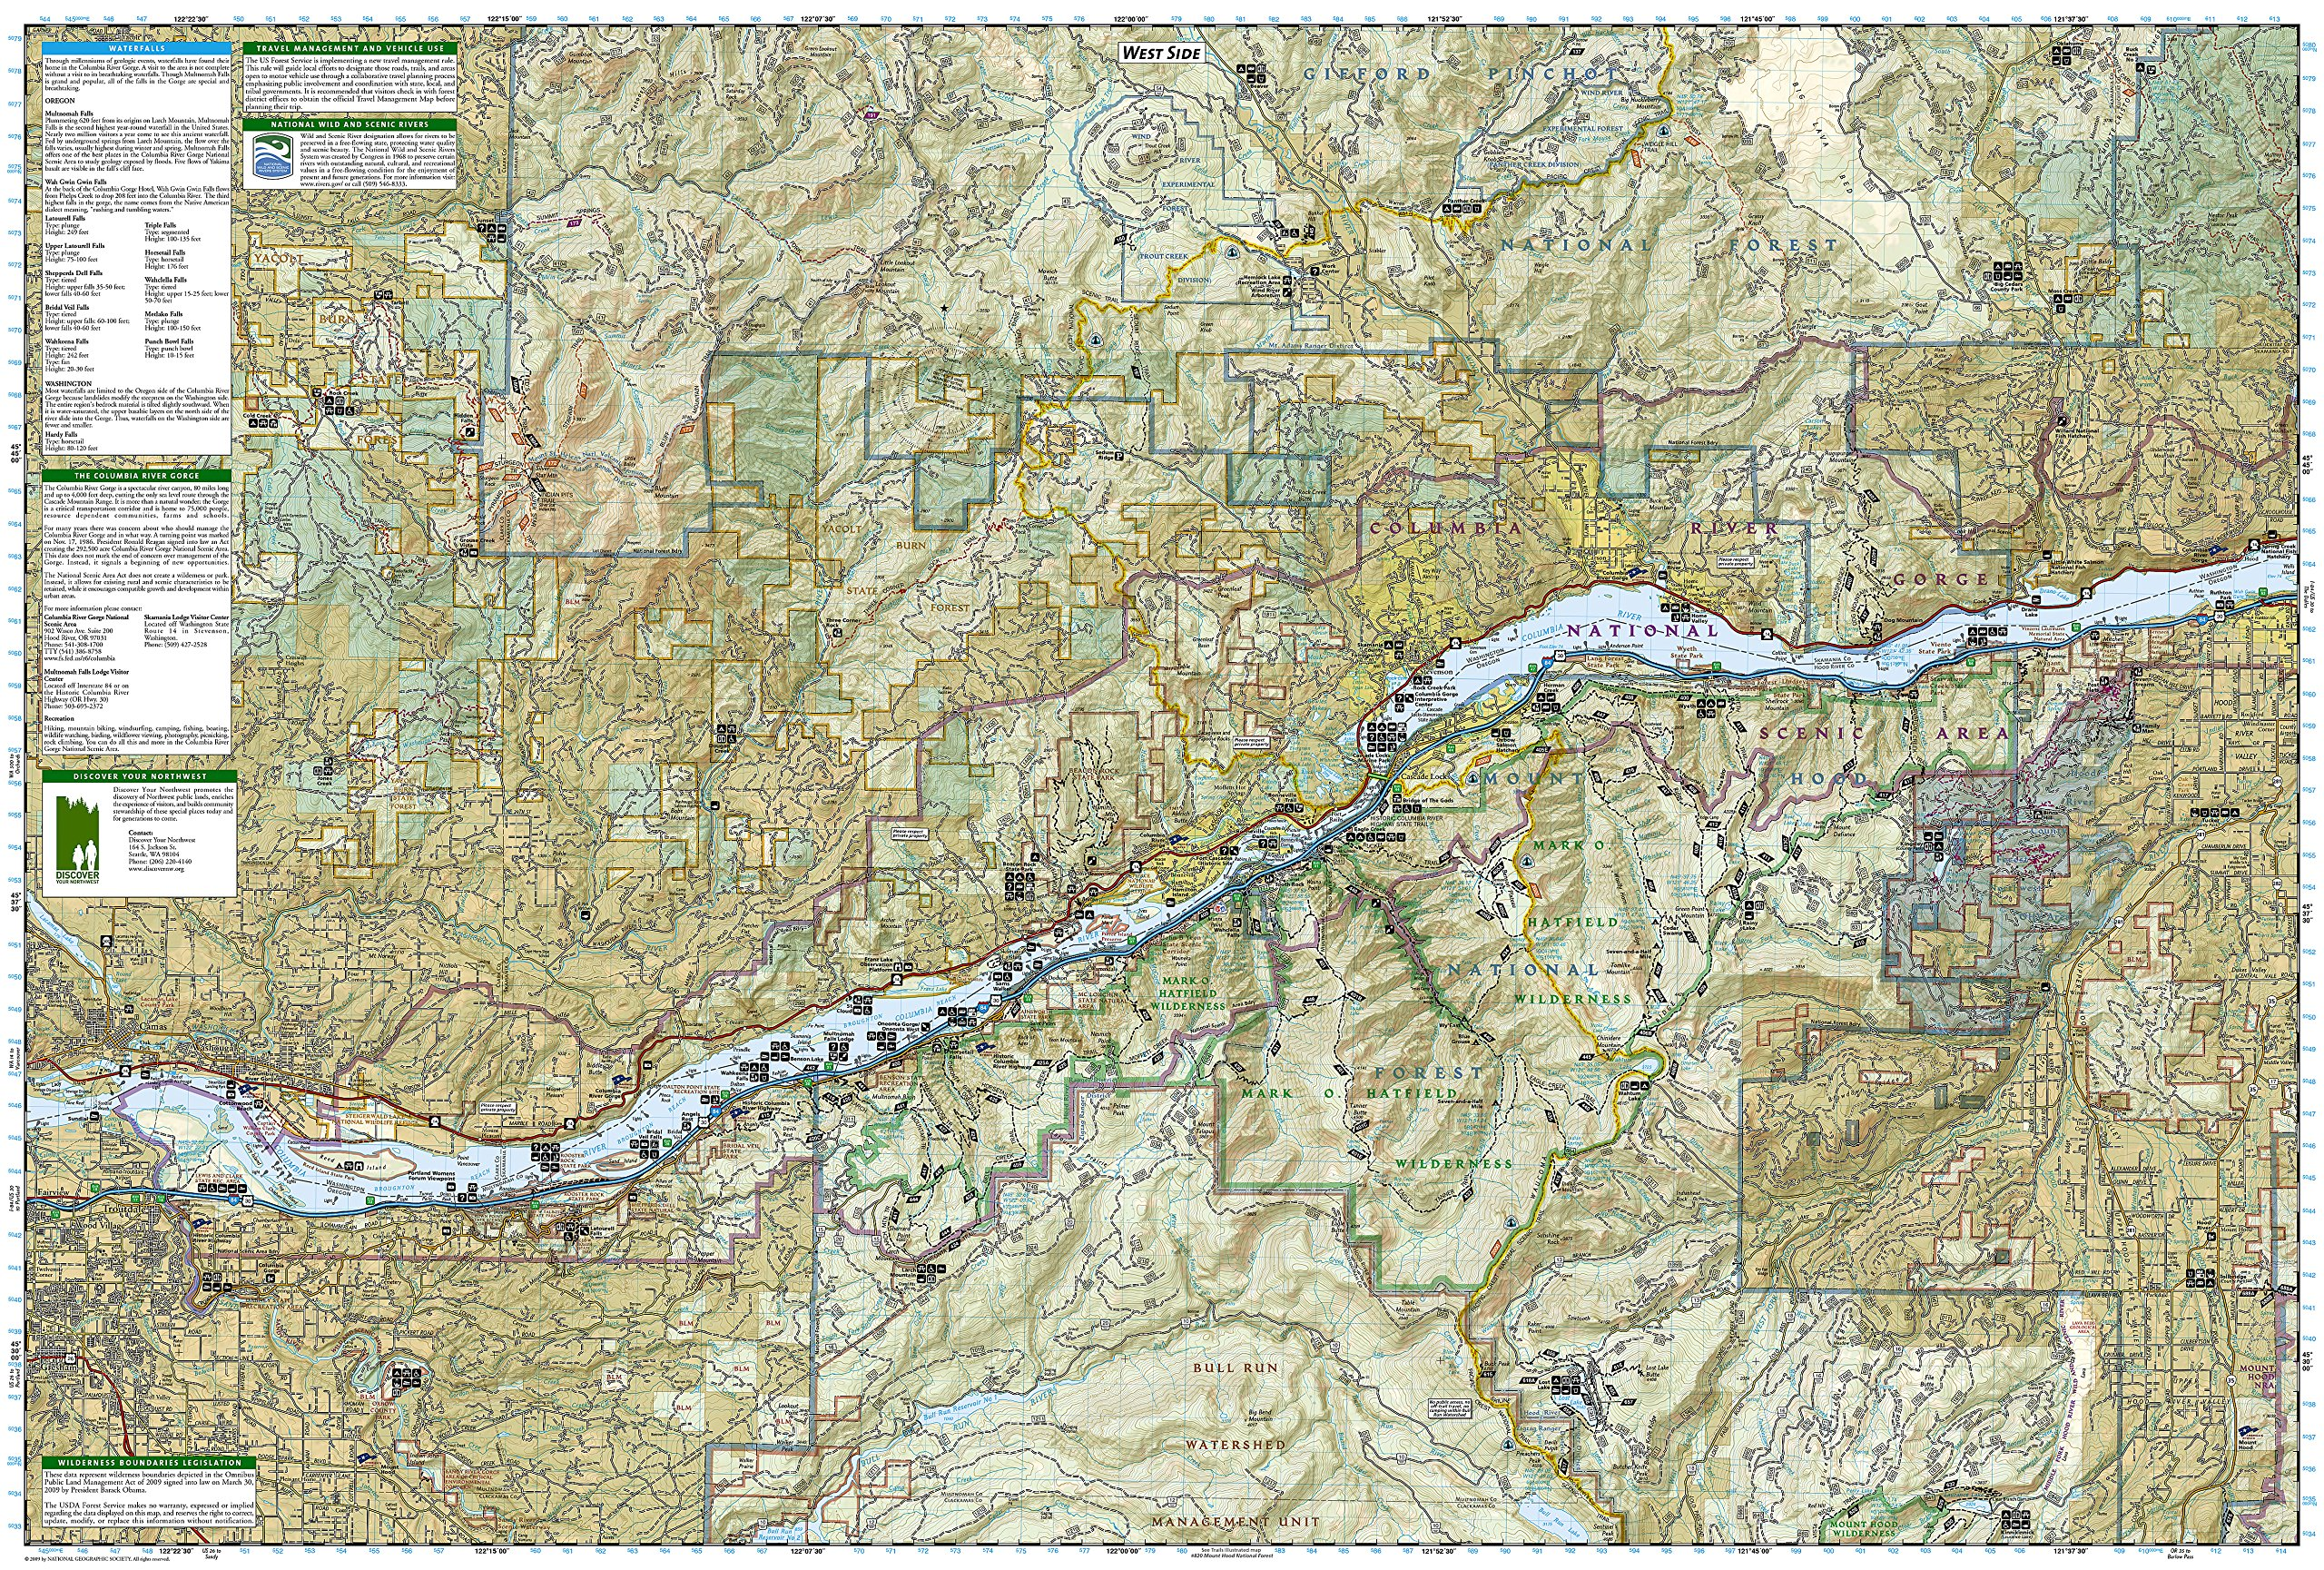 Red River Gorge Topographic Map.Columbia River Gorge National Scenic Area National Geographic